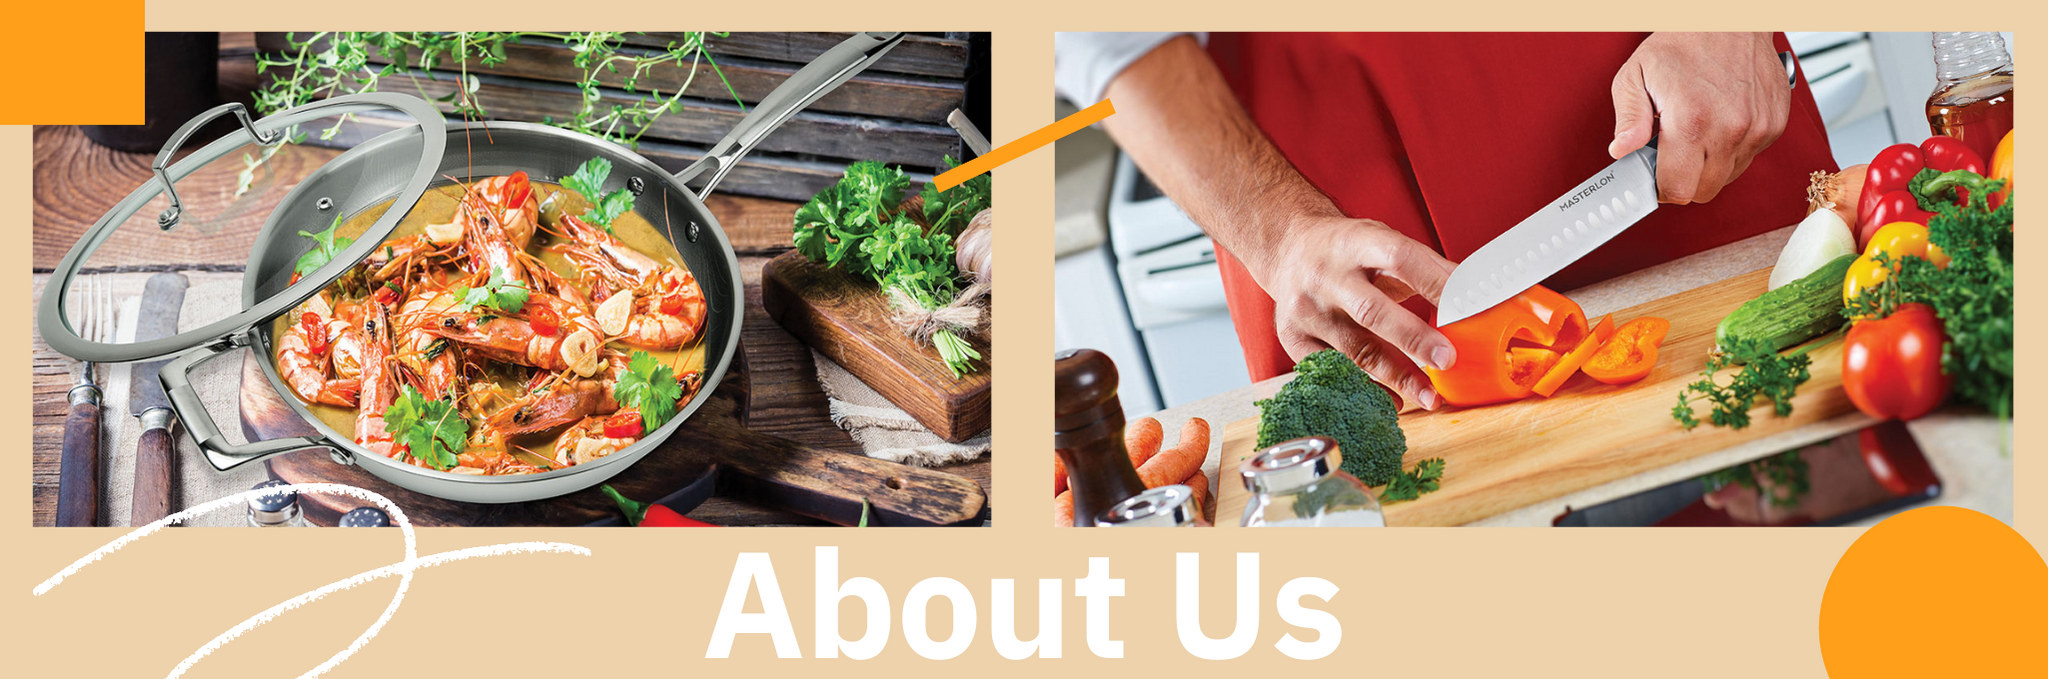 MasterPan about us banner with skillet and chopping knife